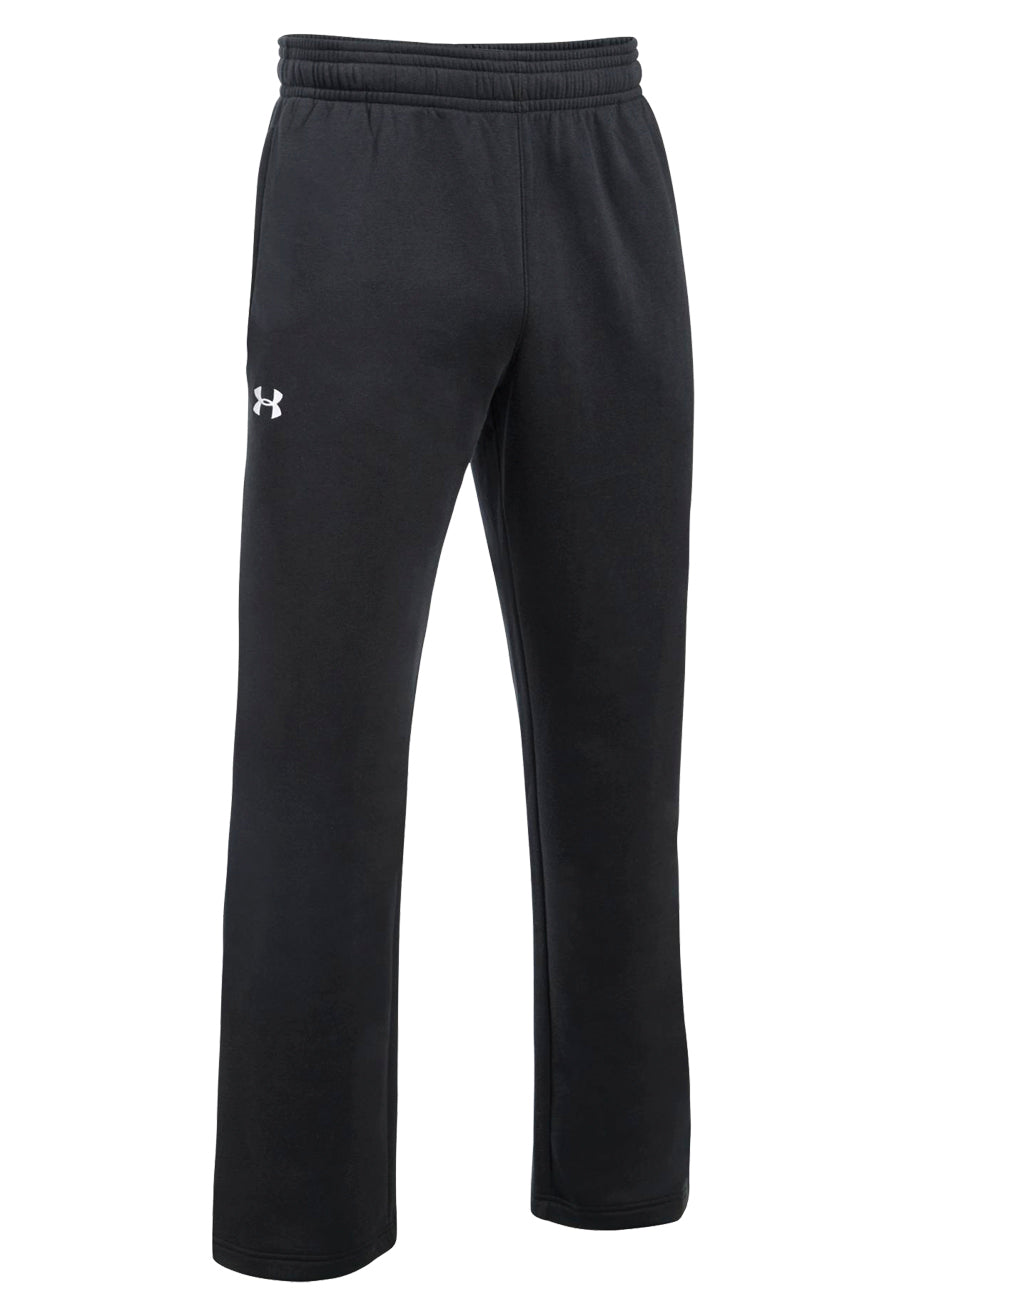 Men's Under Armour Hustle Sweatpant